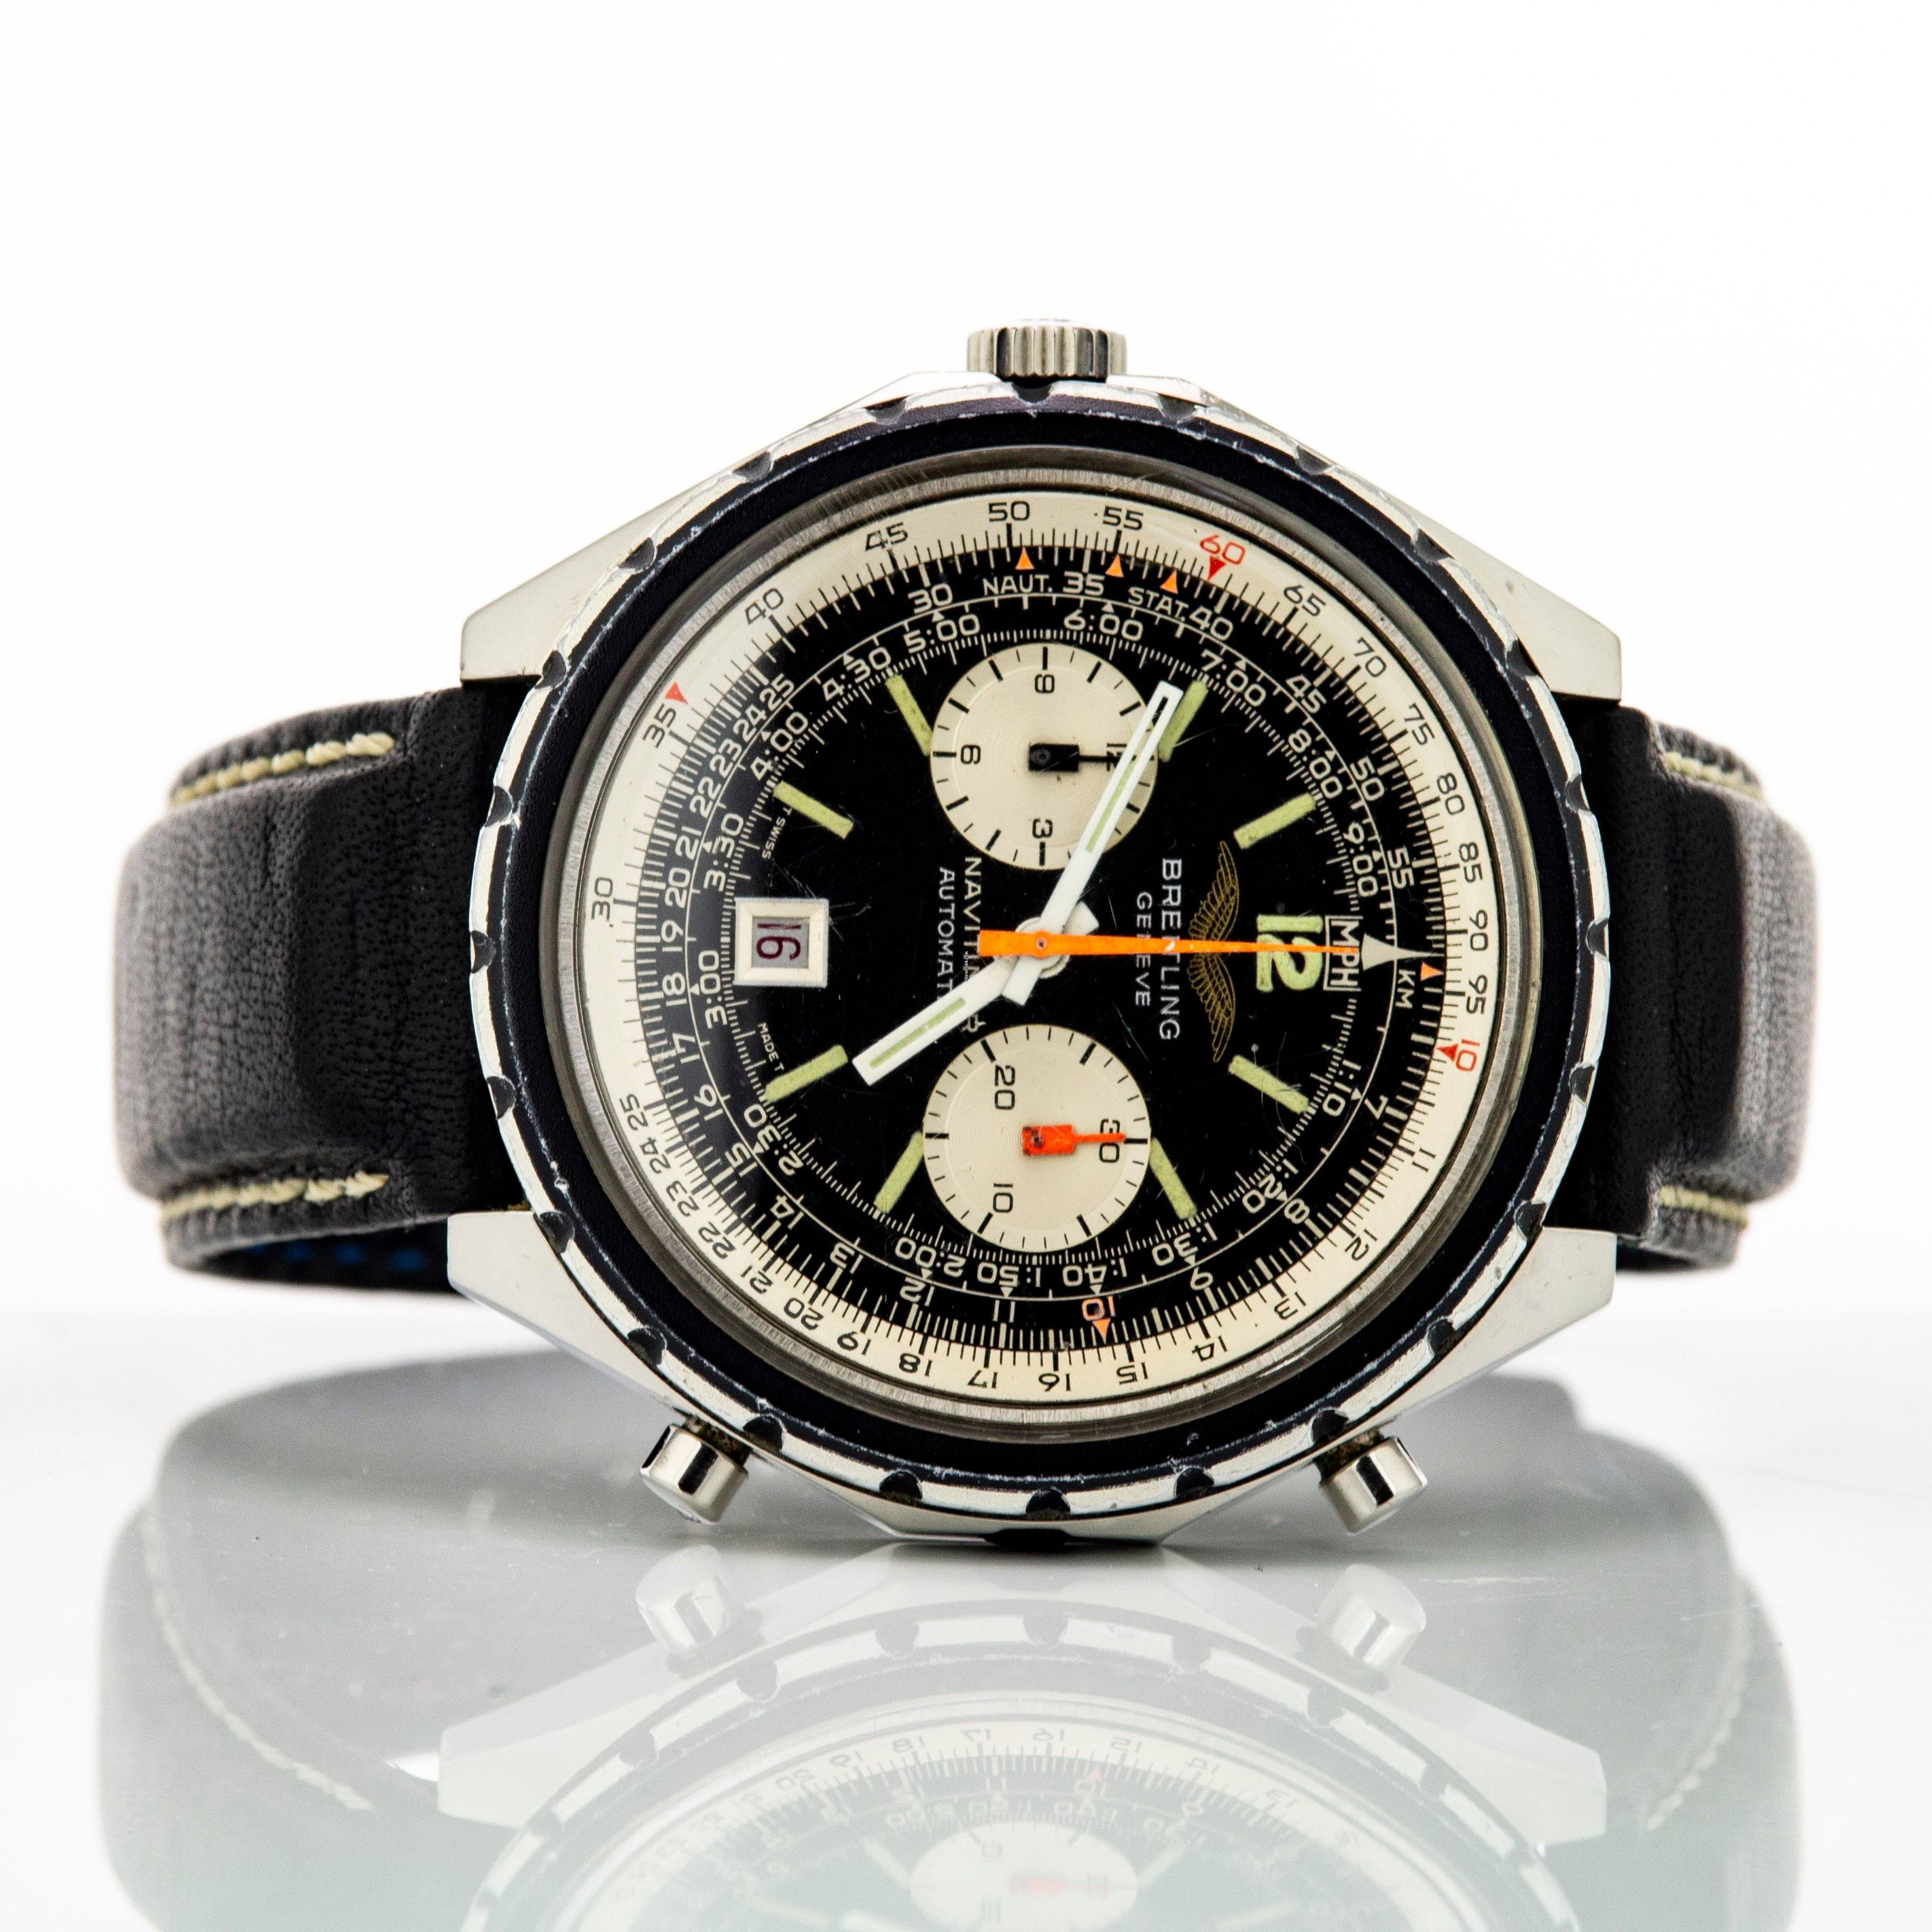 Breitling Navitimer Reference 1806 Iraqi Air Force Issue